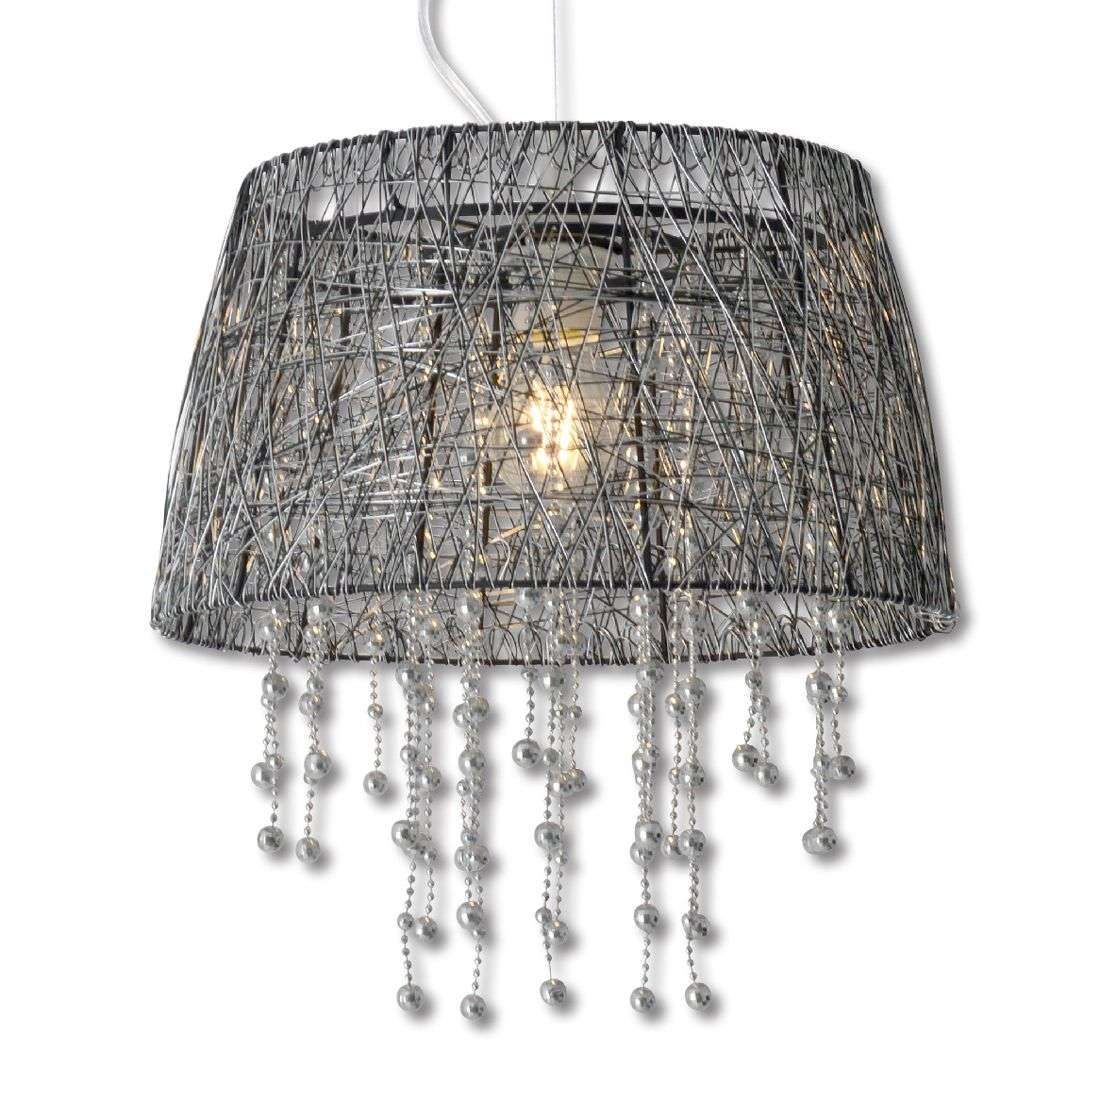 Wire Pendant Light Frizzy Pendant Light With Black Wire Lampshade Lightscouk